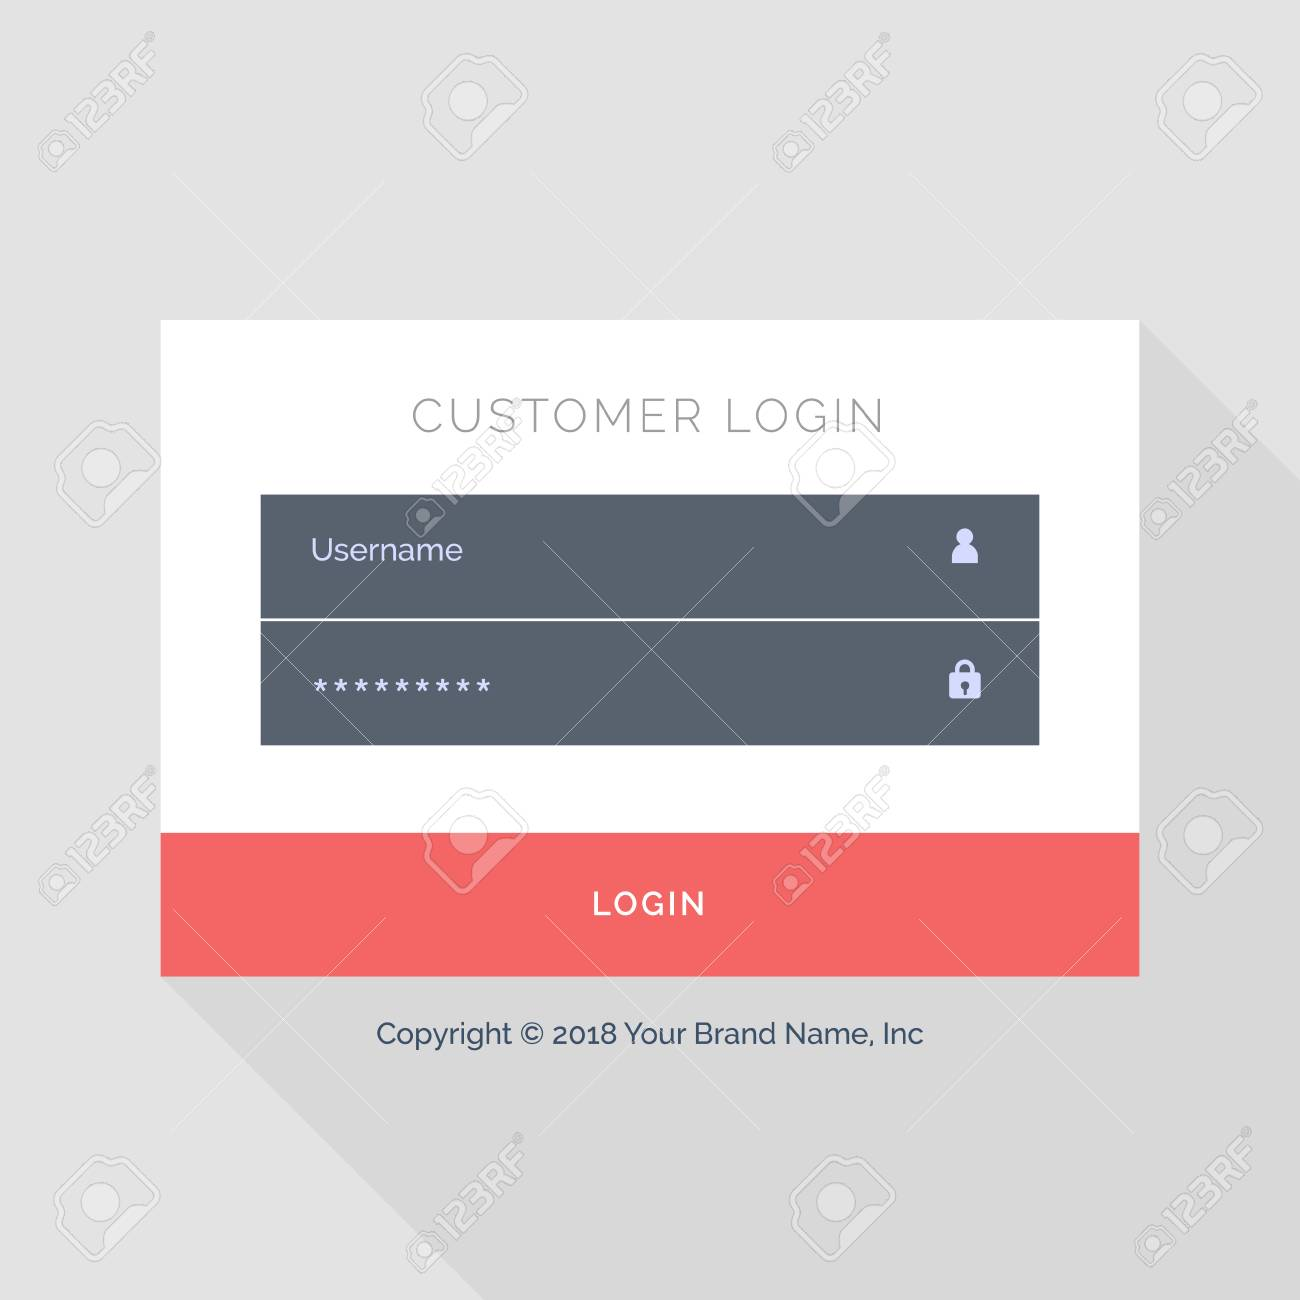 Flat White Login Form UI Template Design Royalty Free Cliparts ...